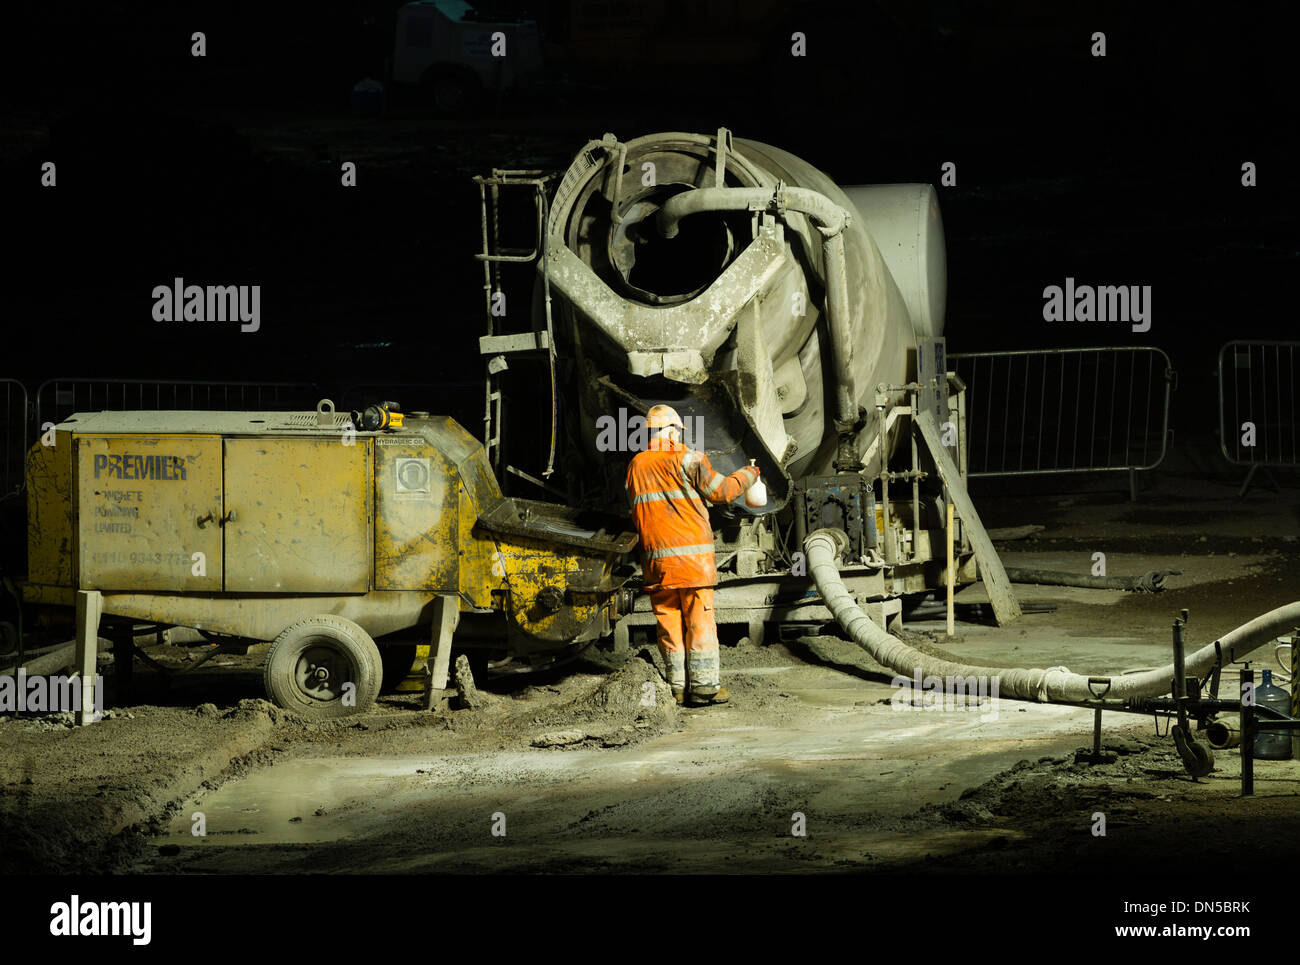 Cement Mixer on building site at night. UK - Stock Image